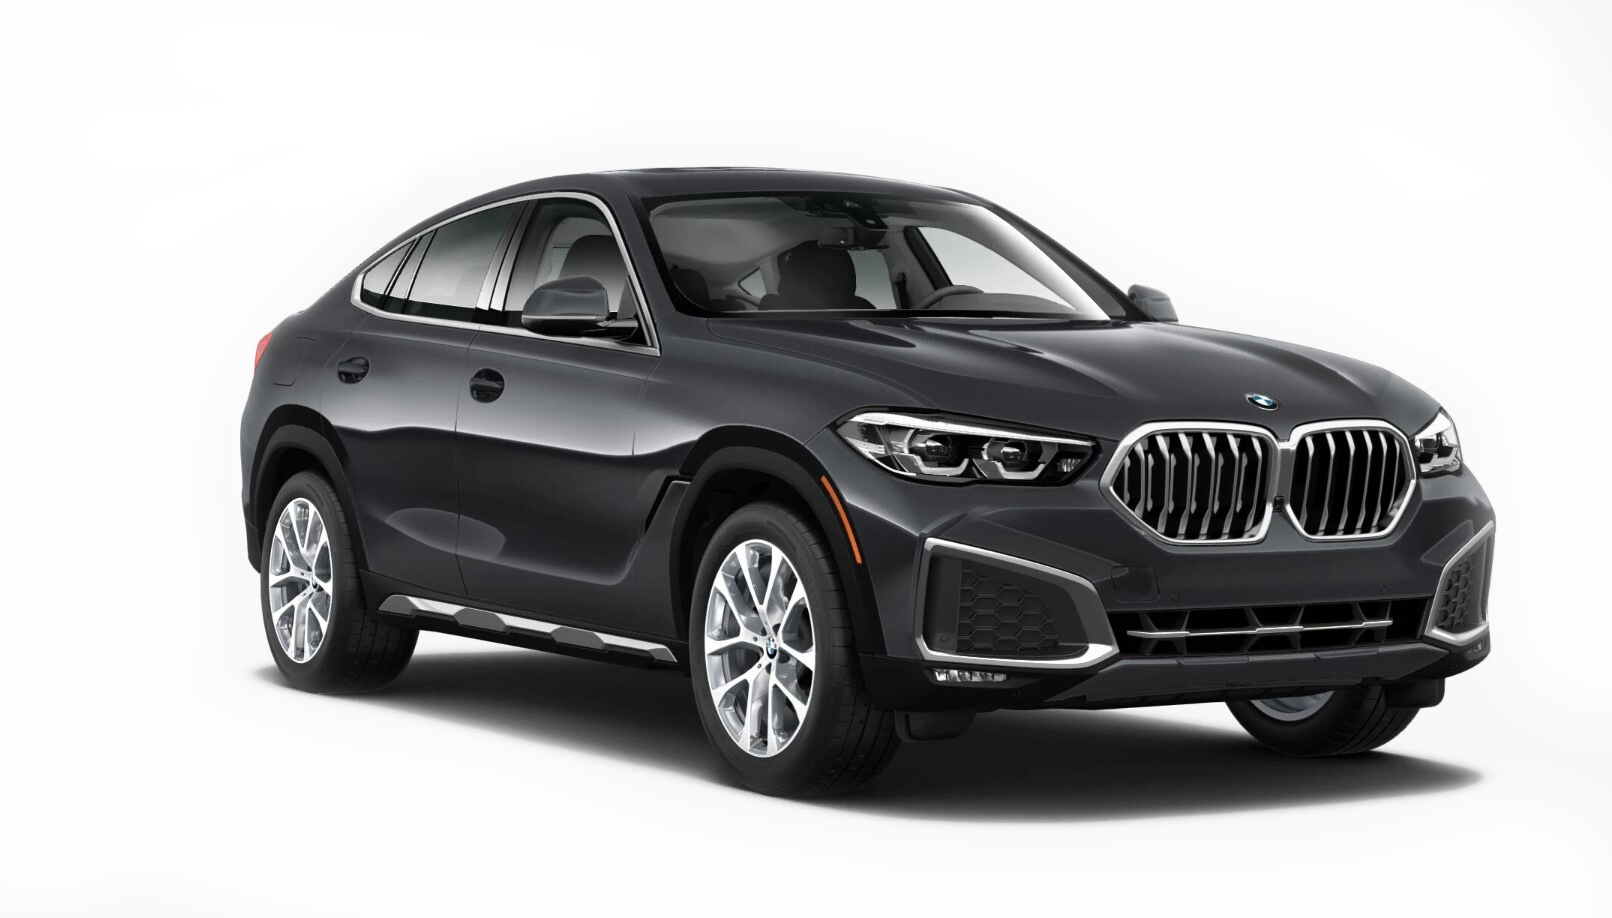 2020 Bmw X6 M50i Full Specs Features And Price Carbuzz